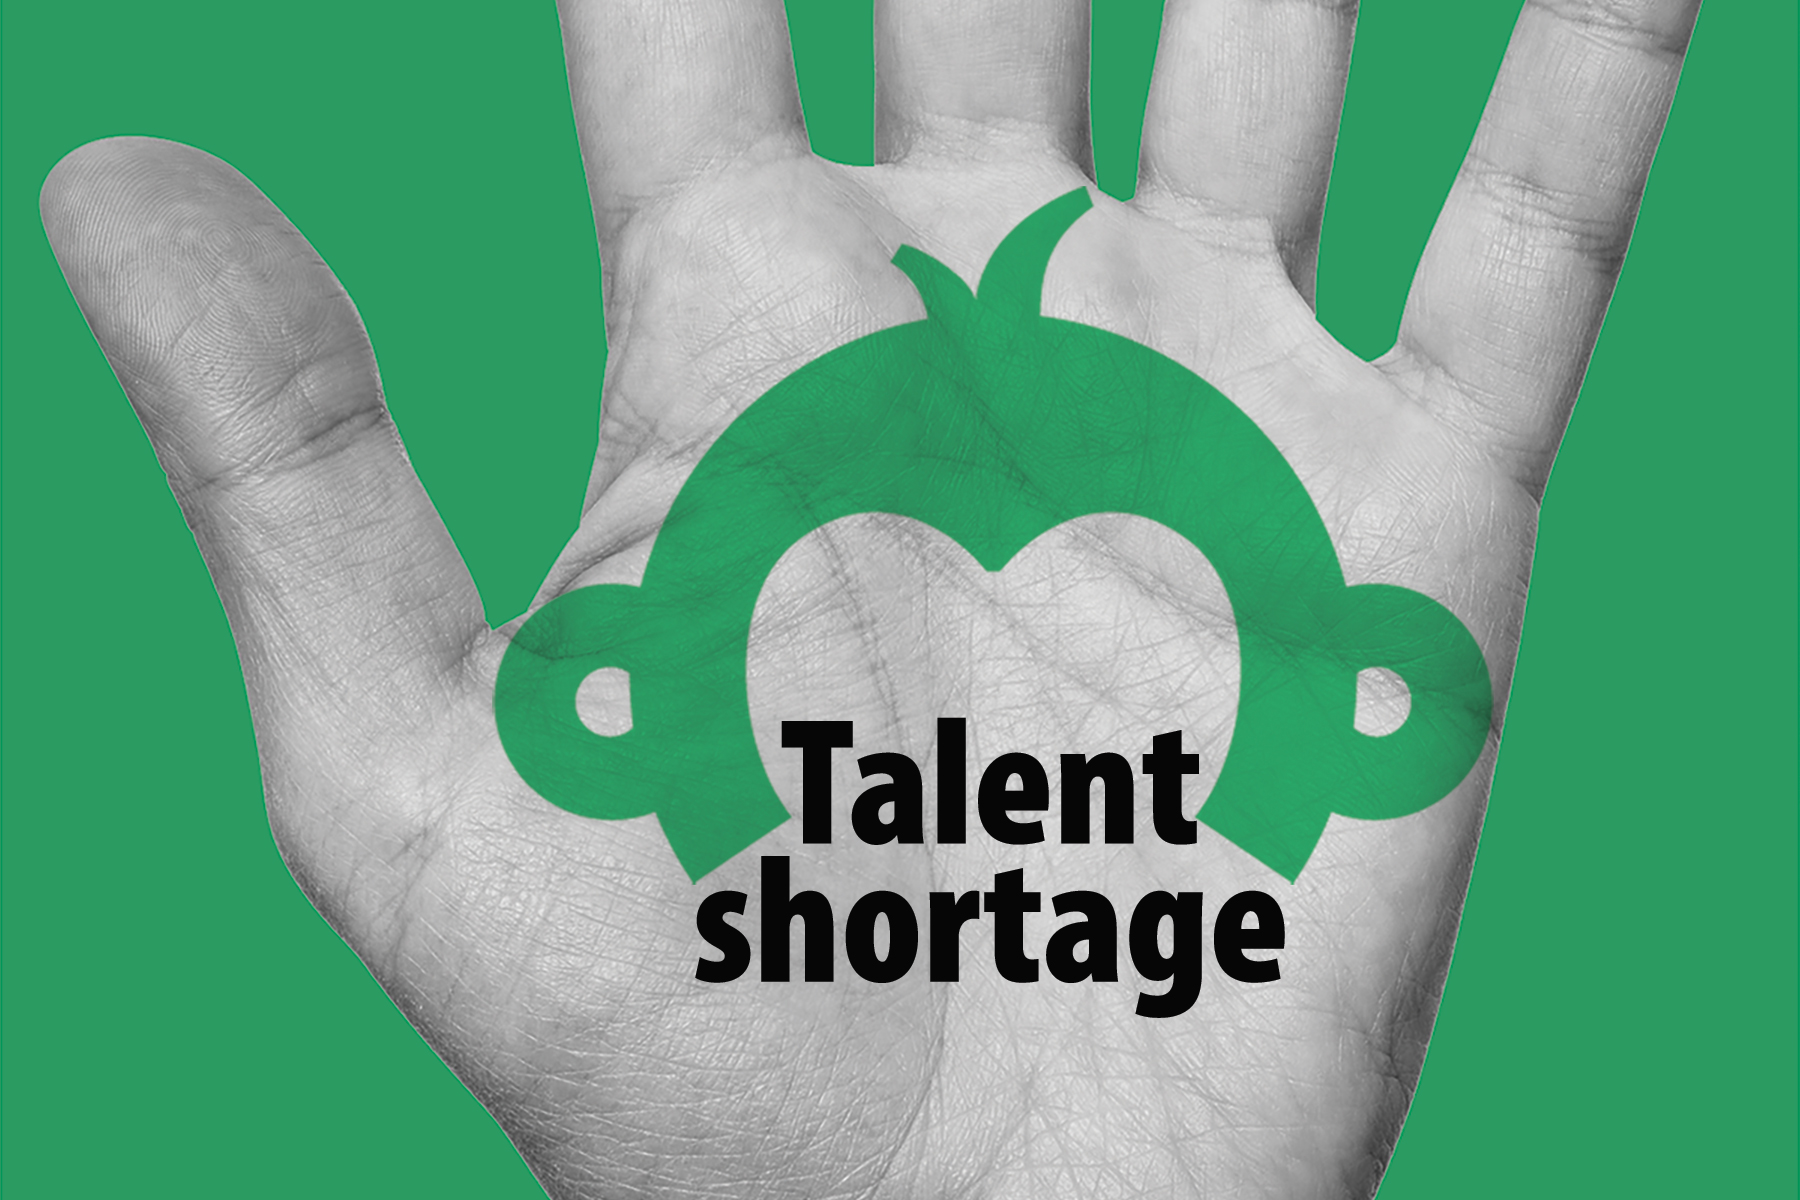 Survey Monkey chief marketing officer on the talent war